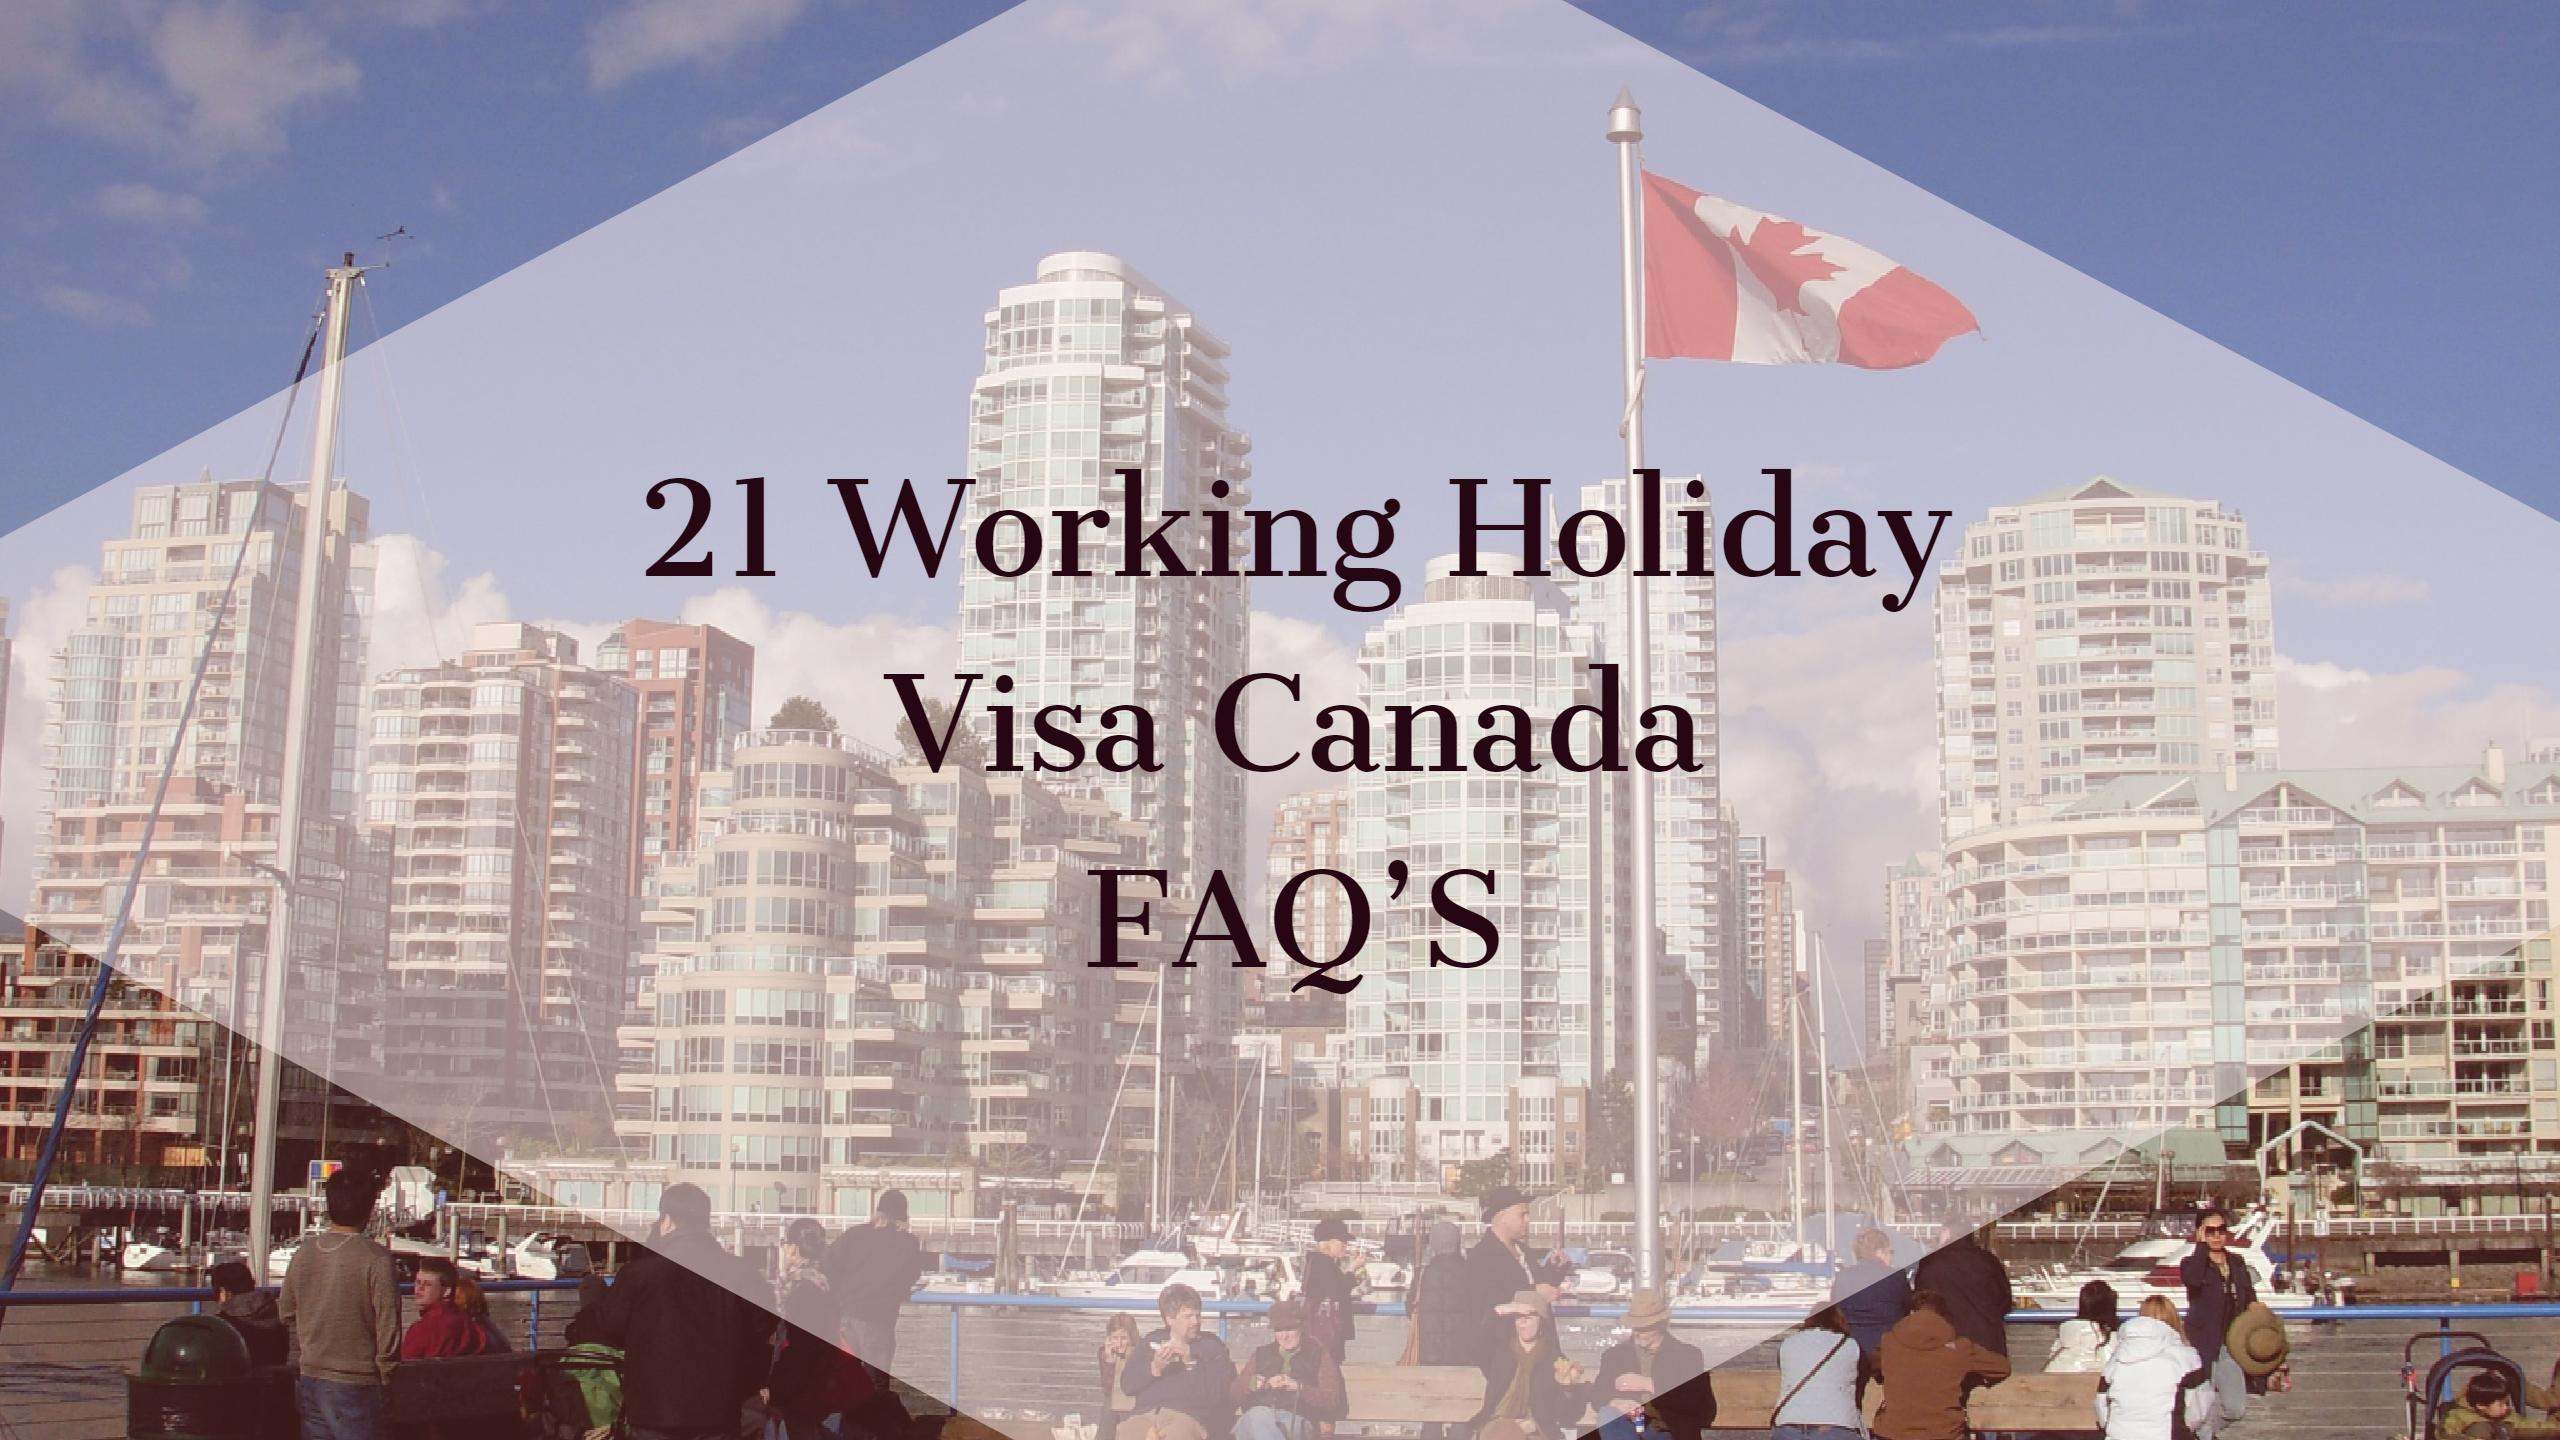 Most frequent questions about working holiday visa Canada.